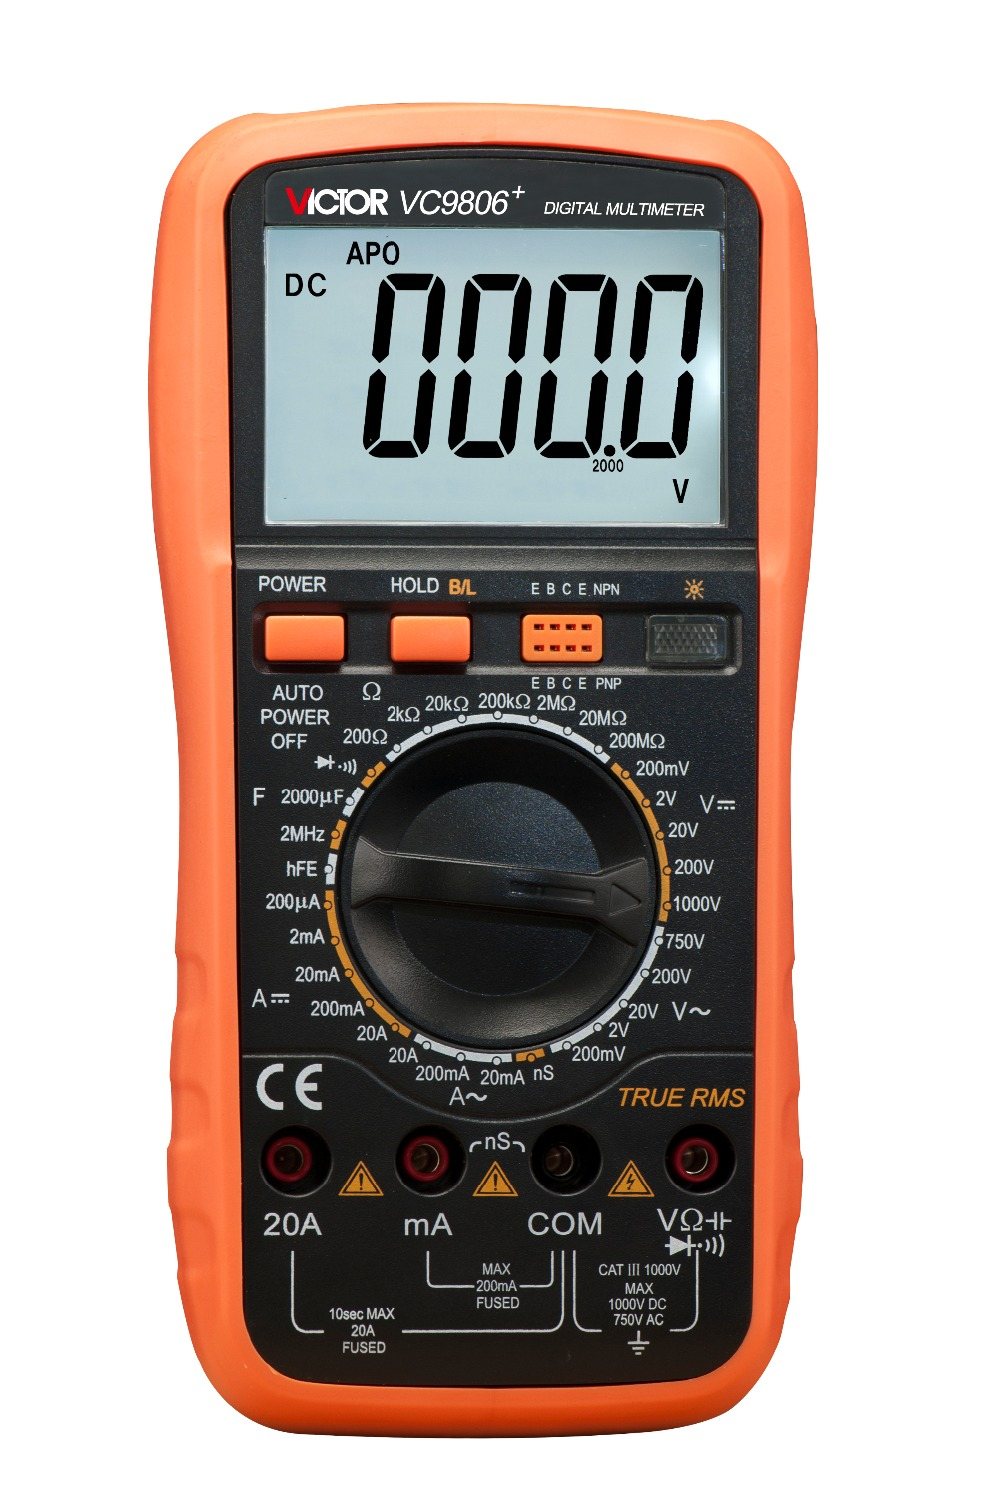 VC9807A+ Digital Multimeter multimetro AC DC Ammeter Voltmeter Ohmmeter conductivity Capacitance Frequency tester my68 handheld auto range digital multimeter dmm w capacitance frequency